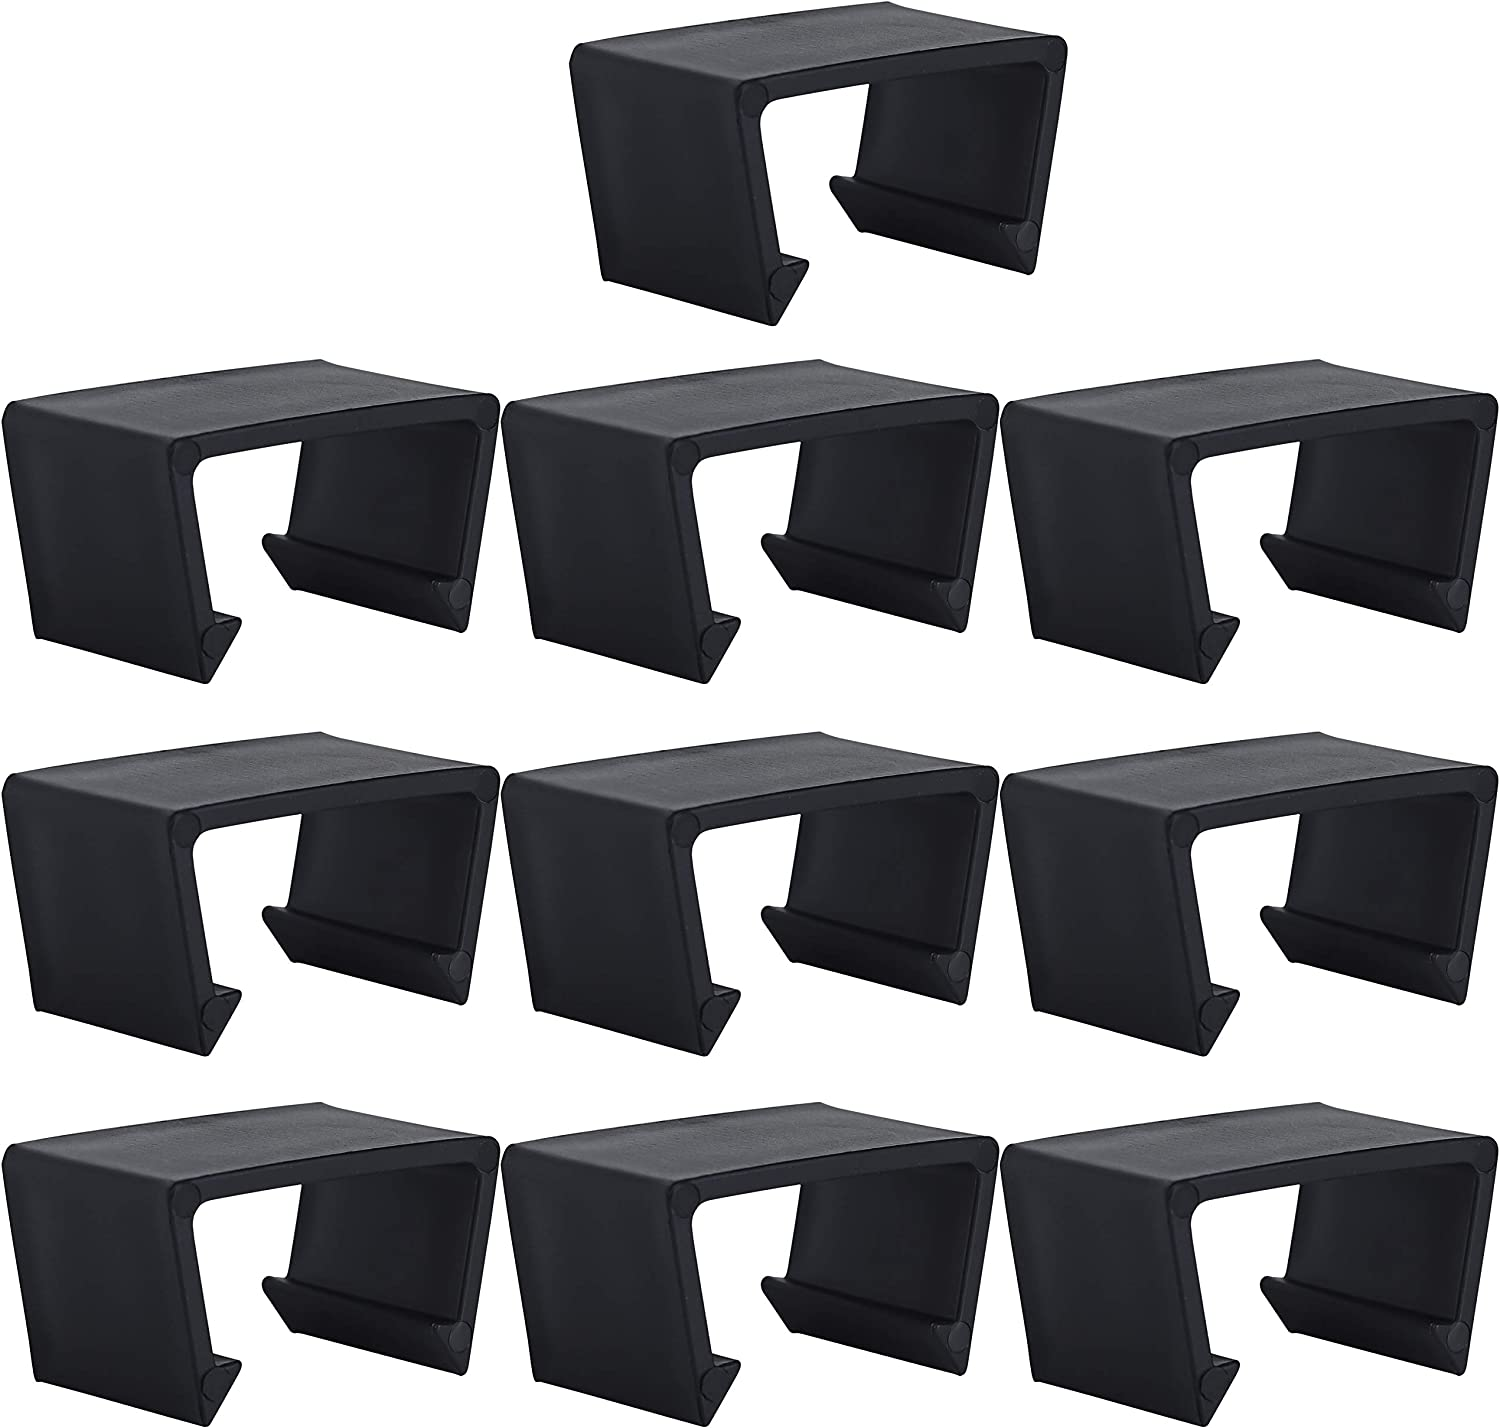 Kuhome Black Sofa Connect Clamps for Patio Sectional Sofa Outdoor Wicker Chair Sofa Alignment Fasteners Clips Connector Module Couch Patio Rattan Furniture (10pcs)